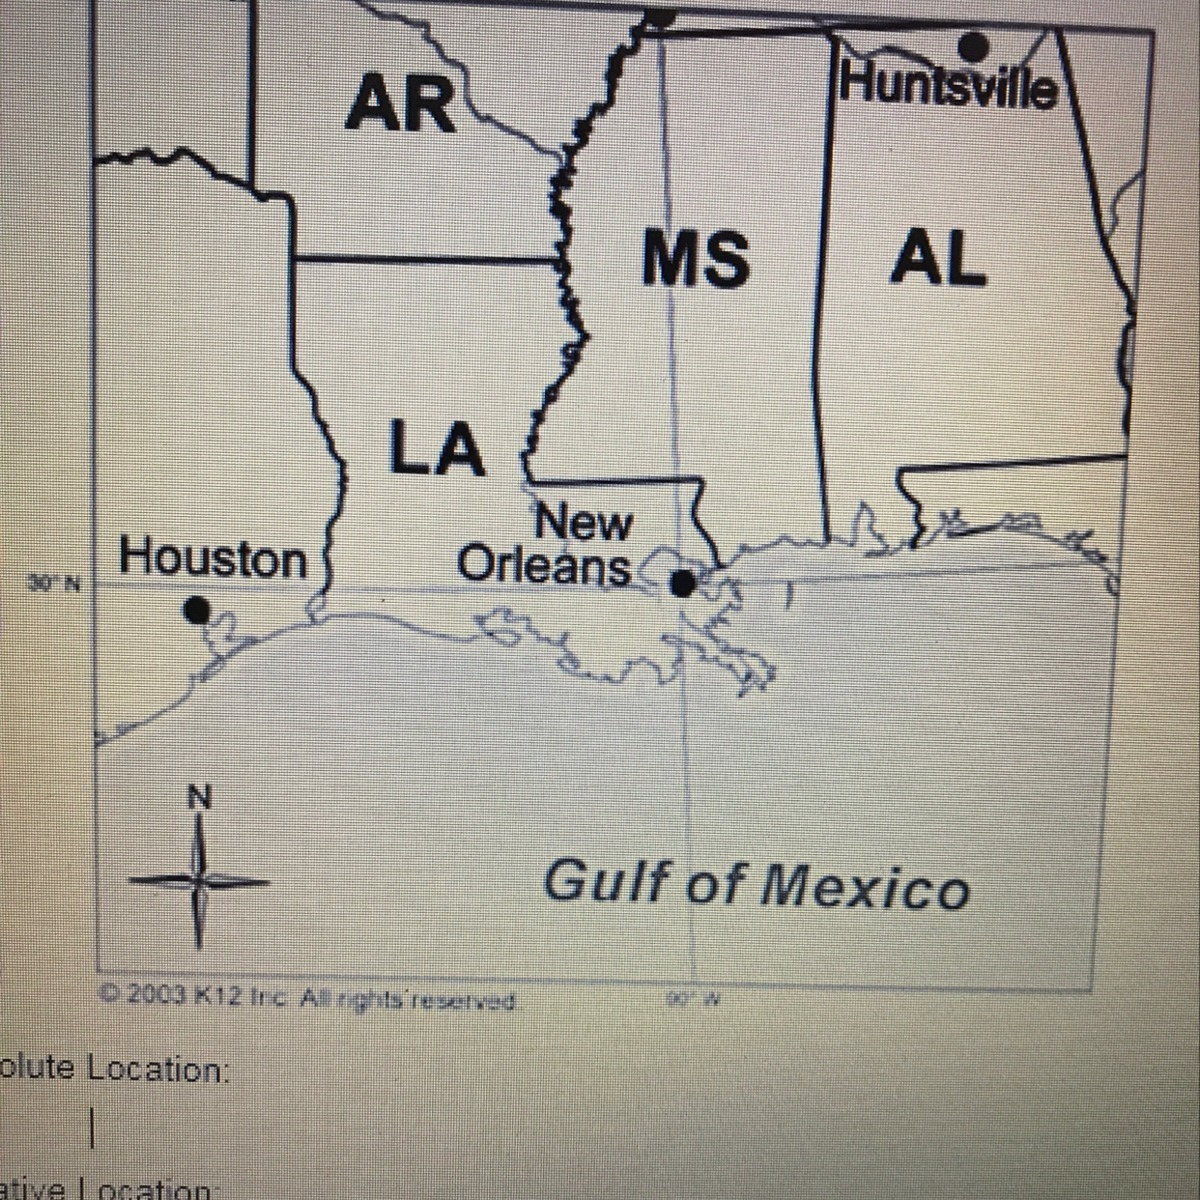 Use The Map To Describe Both The Absolute And Relative Location Of New Orleans